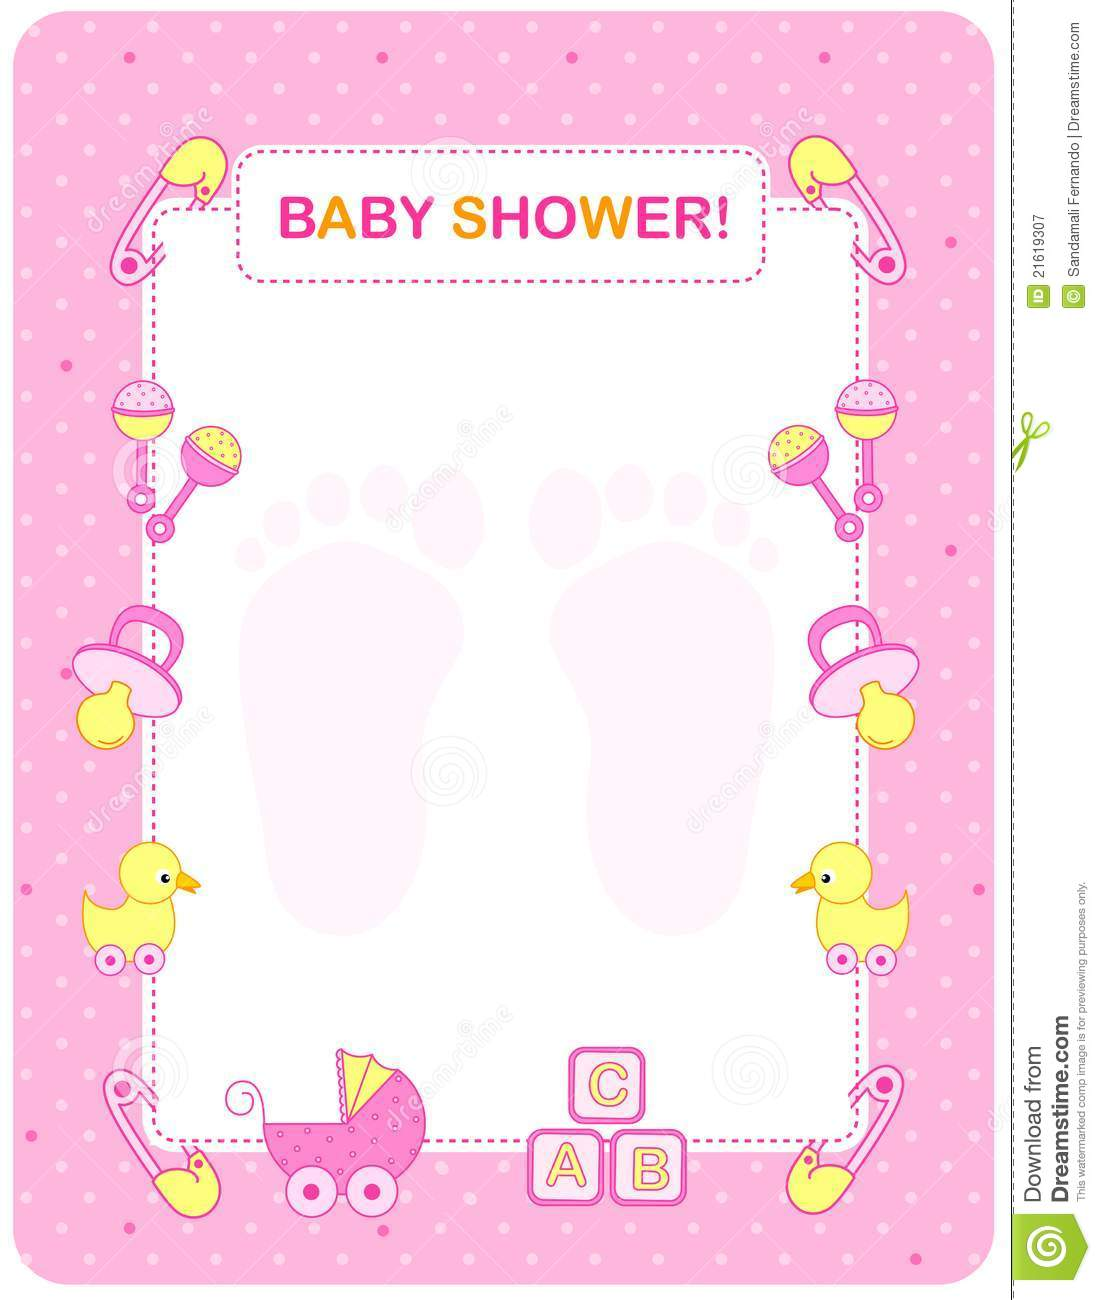 Baby Shower Card For Girls Royalty Free Stock Photography - Image: 21619307